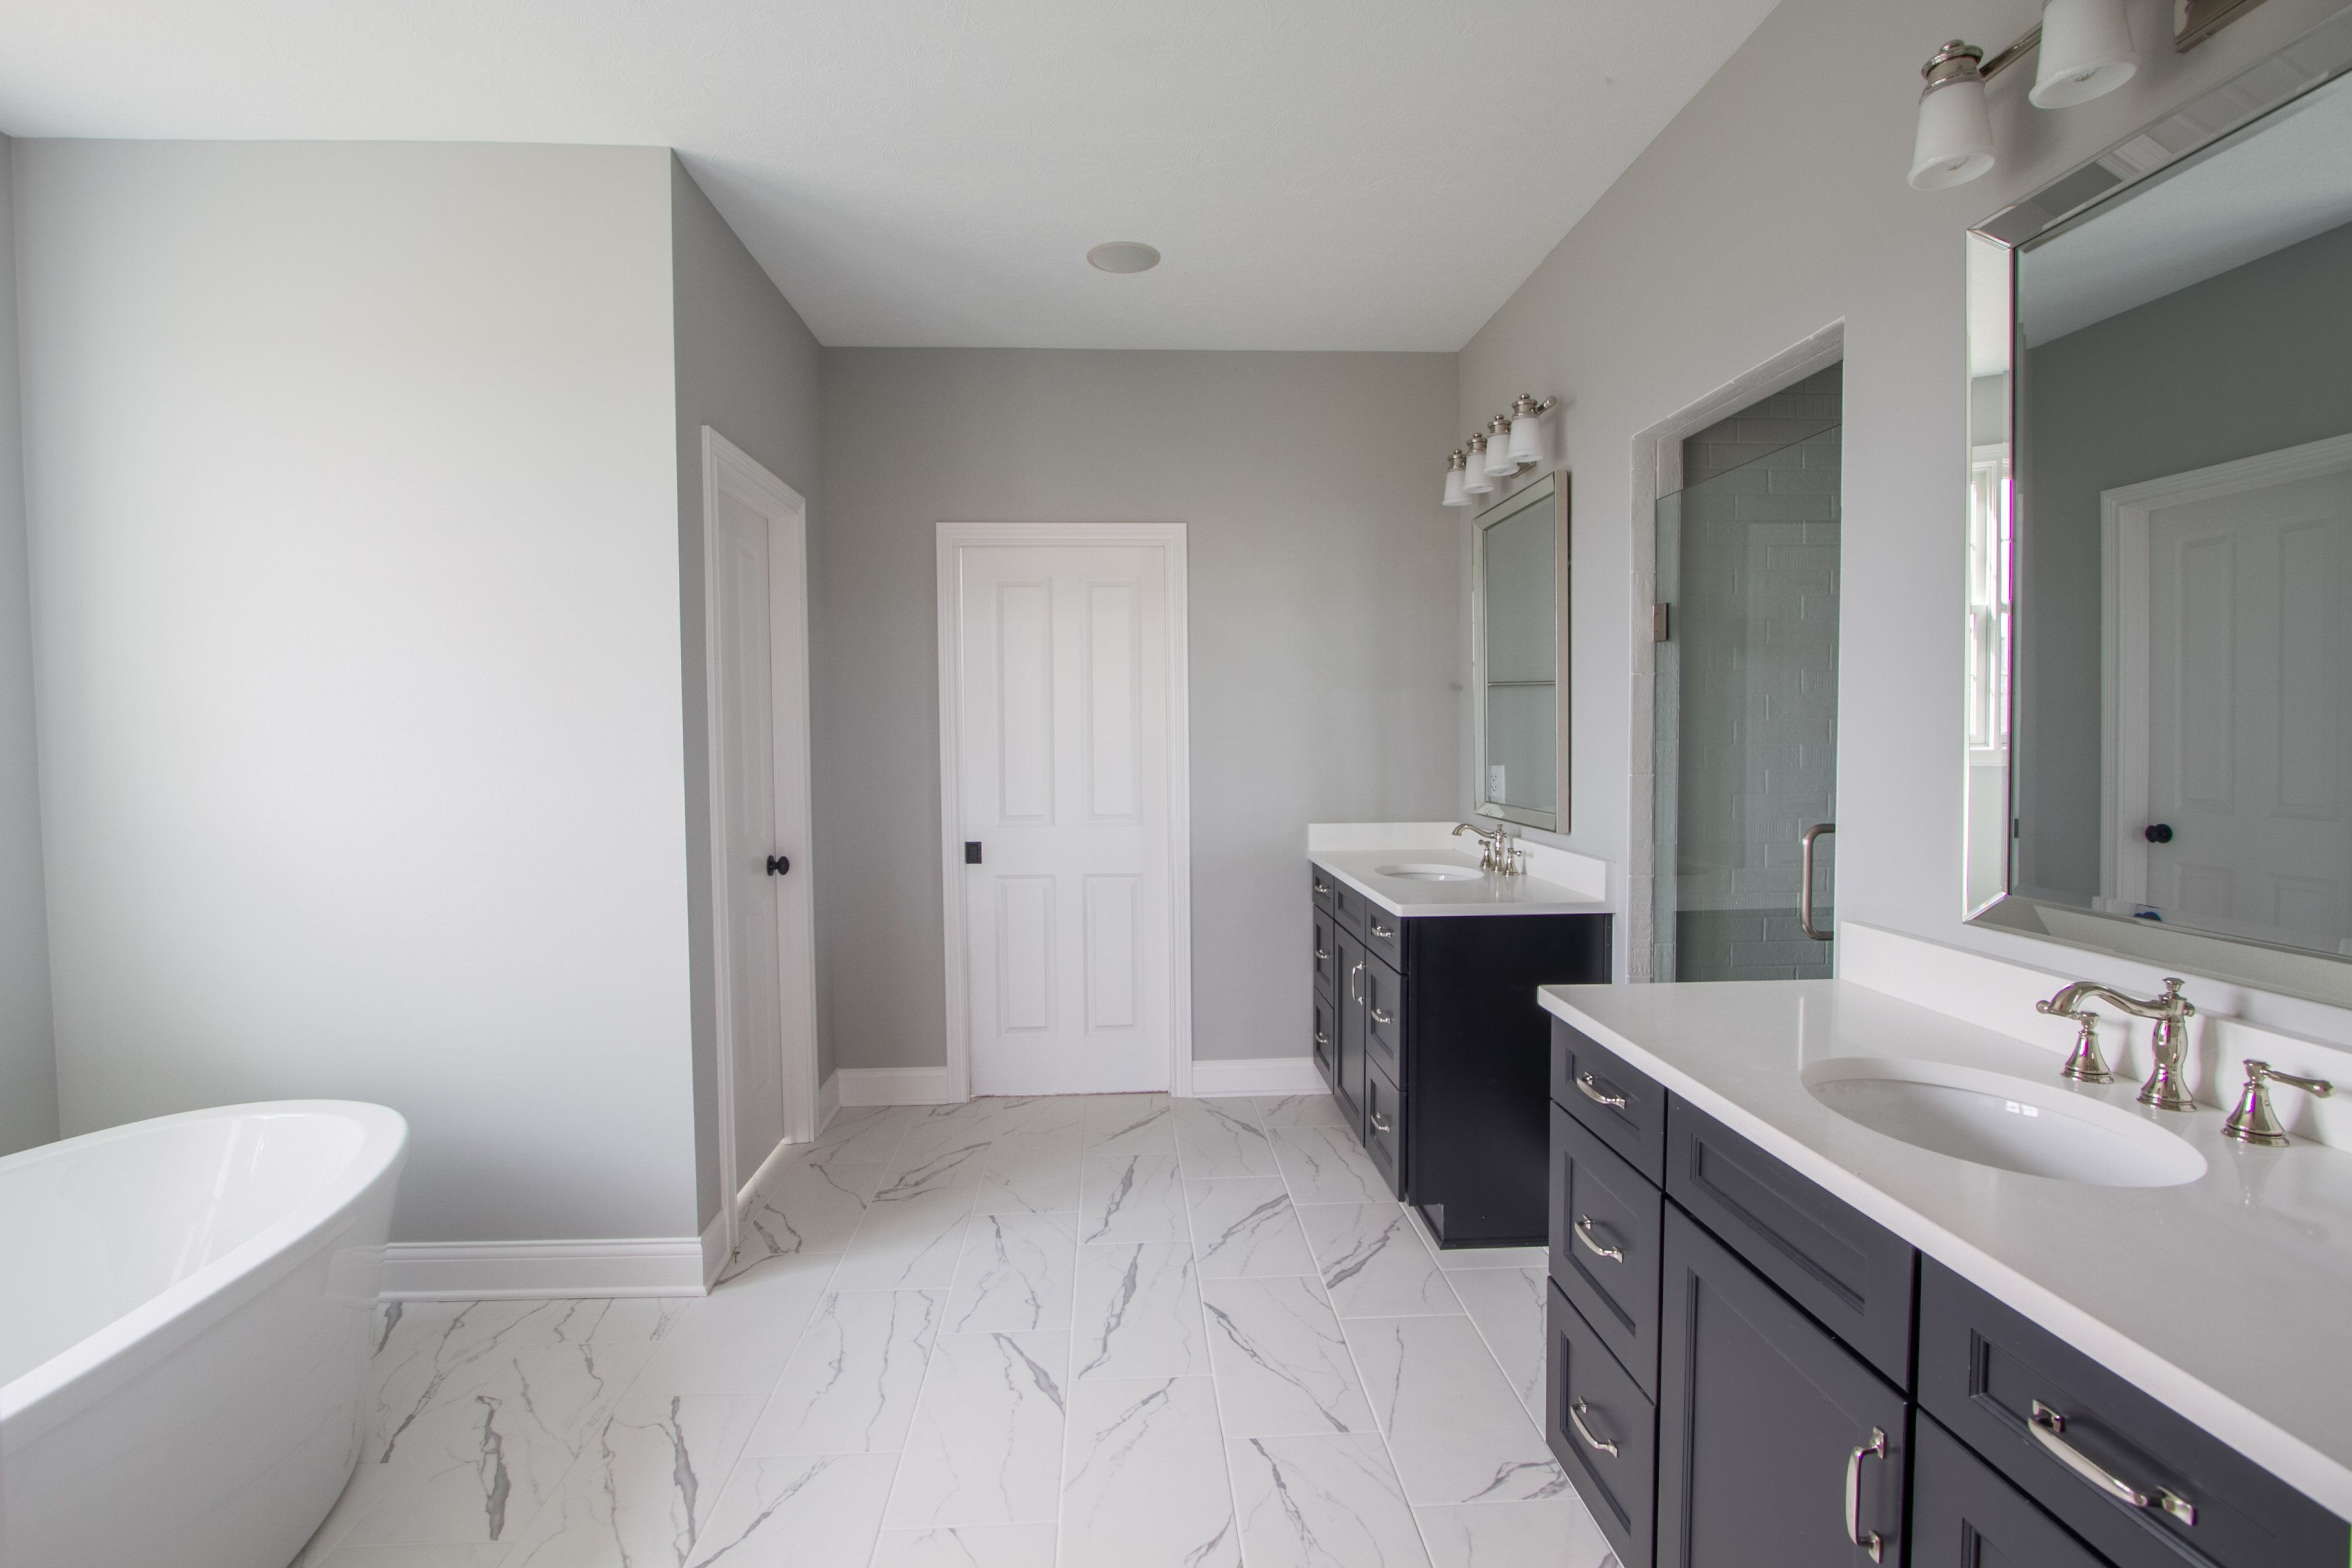 Cabinetry & Flooring Project For Executive Homes & Mb Designs